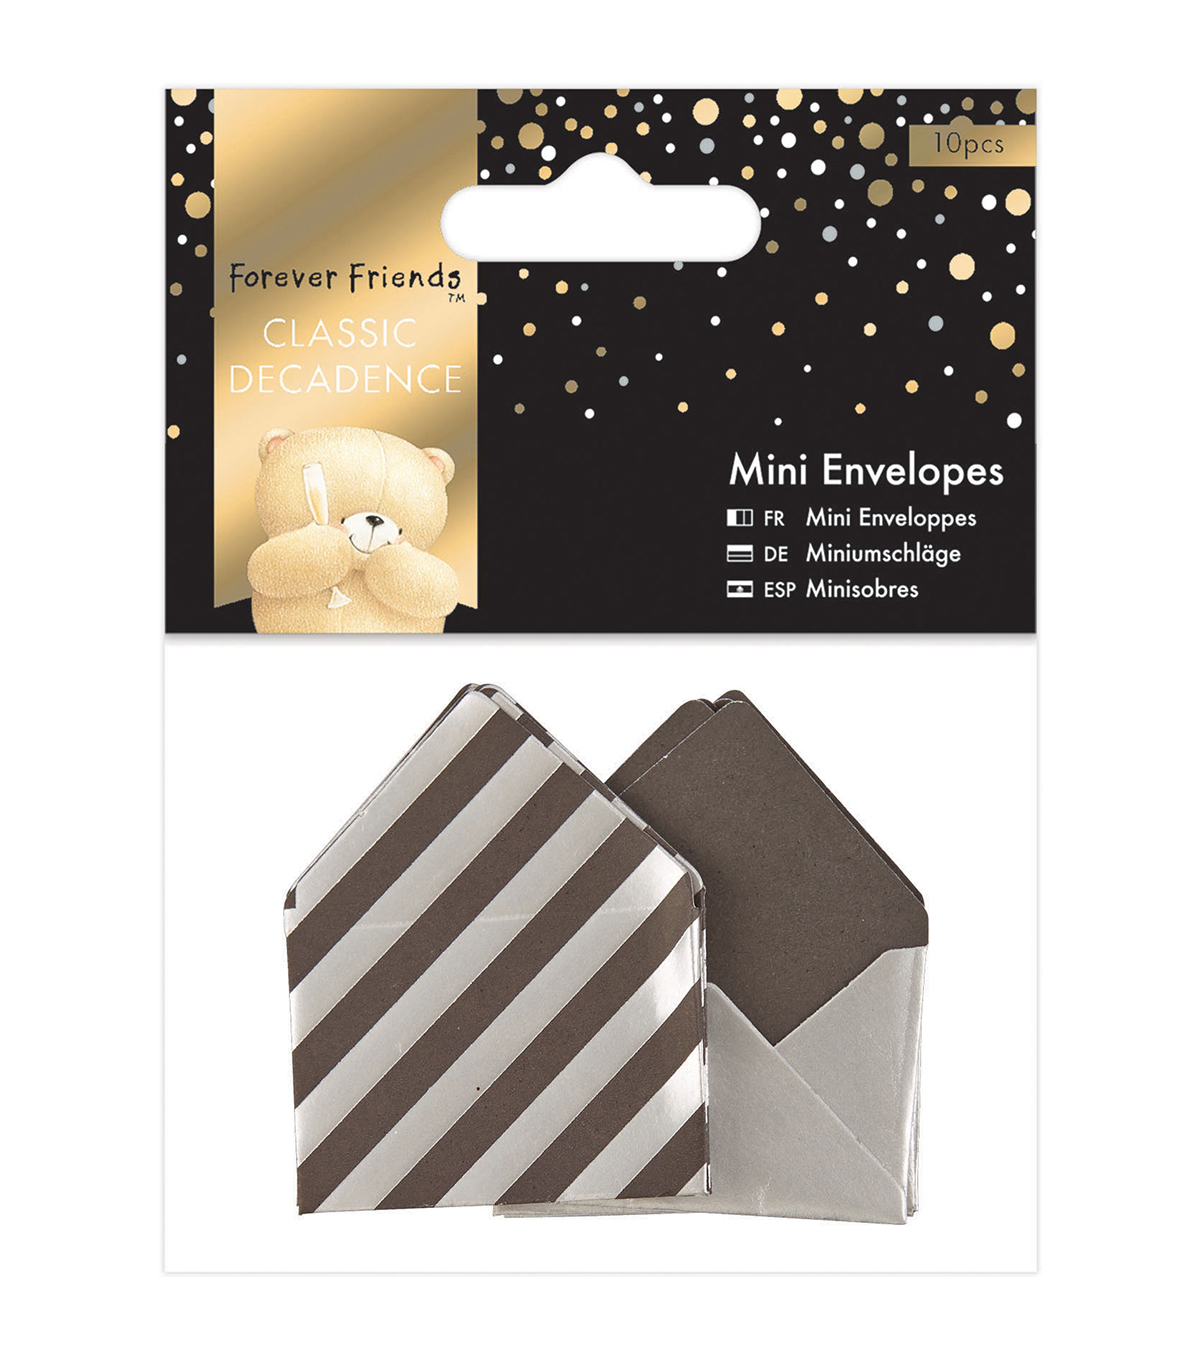 Docrafts Forever Friends Classic Decadence 10ct Mini Envelopes-Silver